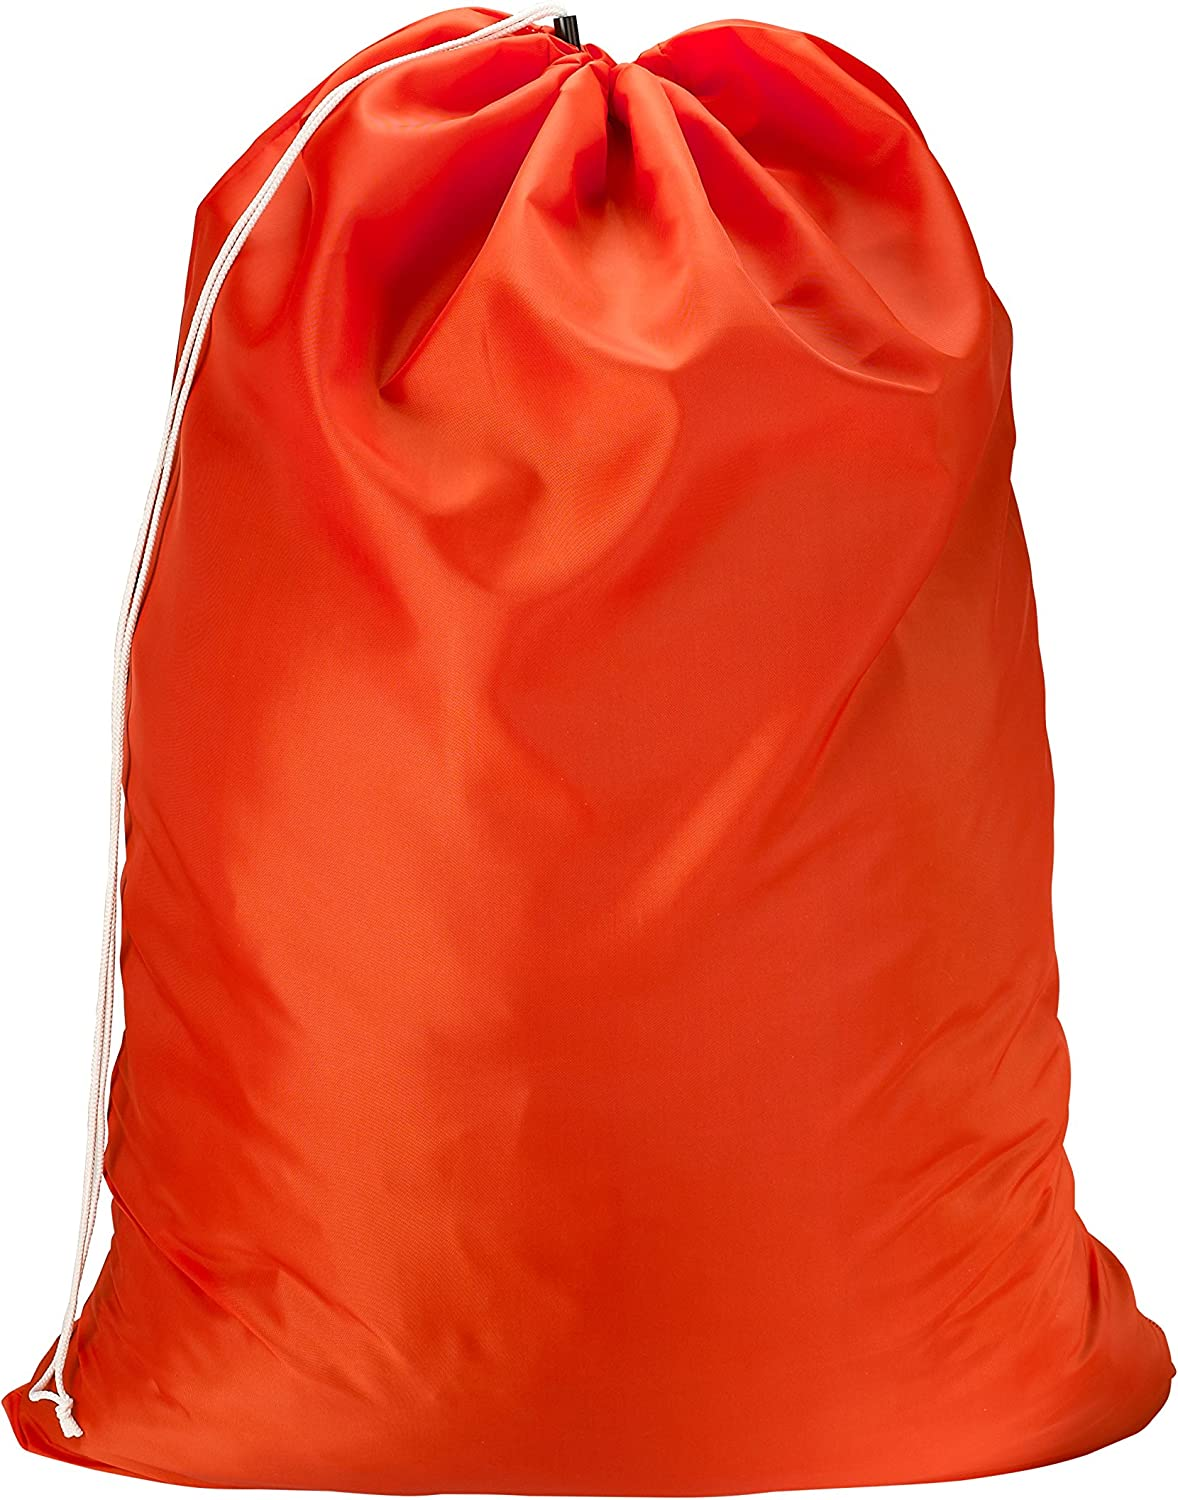 Nylon Laundry Bag - Locking Drawstring Closure and Machine Washable. These Large Bags Will Fit a Laundry Basket or Hamper and Strong Enough to Carry up to Three Loads of Clothes. (Orange)